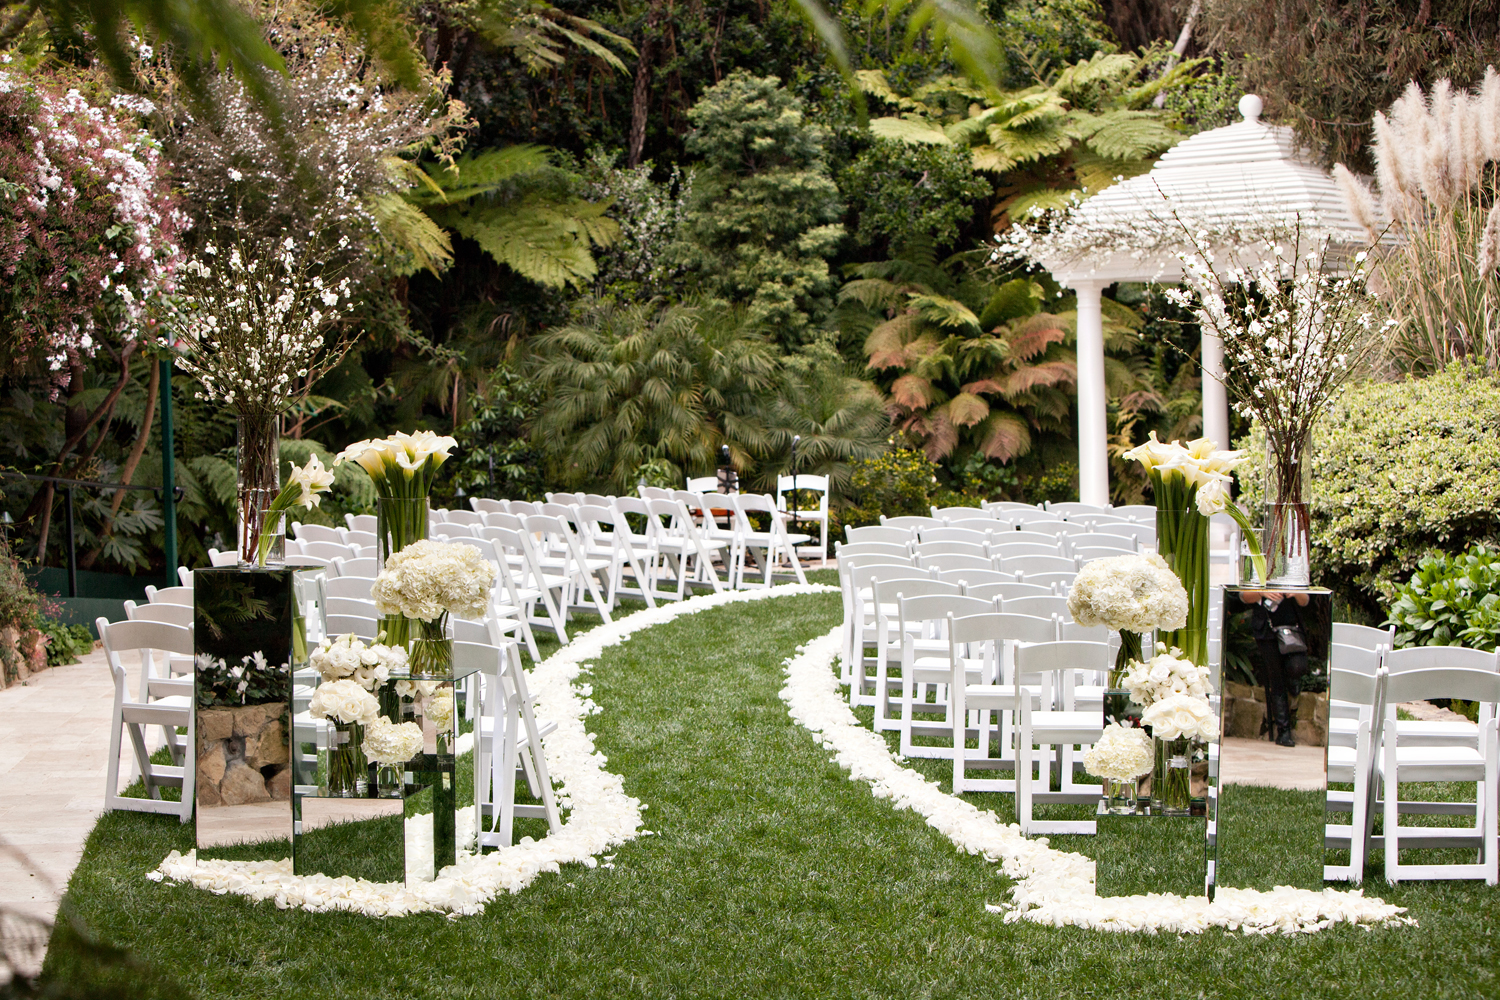 ceremony seating arrangements, curved aisle